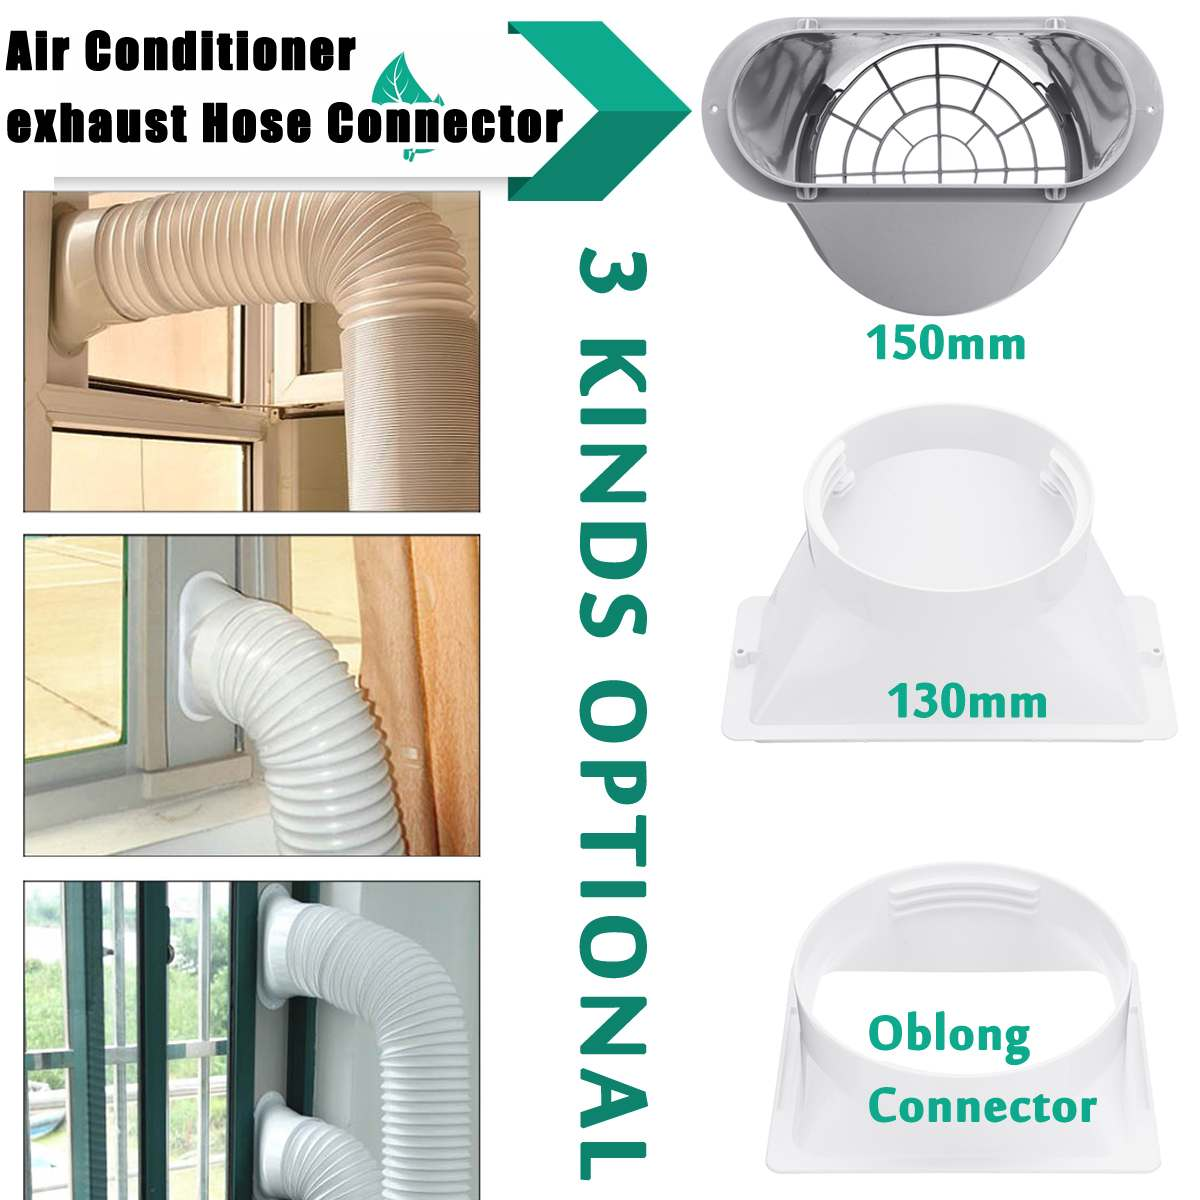 Air Conditioner Window Pipe Interface Exhaust Hose/Tube Connector Heating Cooling Vents Ventilation Exhaust Outlet Grille CoverAir Conditioner Window Pipe Interface Exhaust Hose/Tube Connector Heating Cooling Vents Ventilation Exhaust Outlet Grille Cover